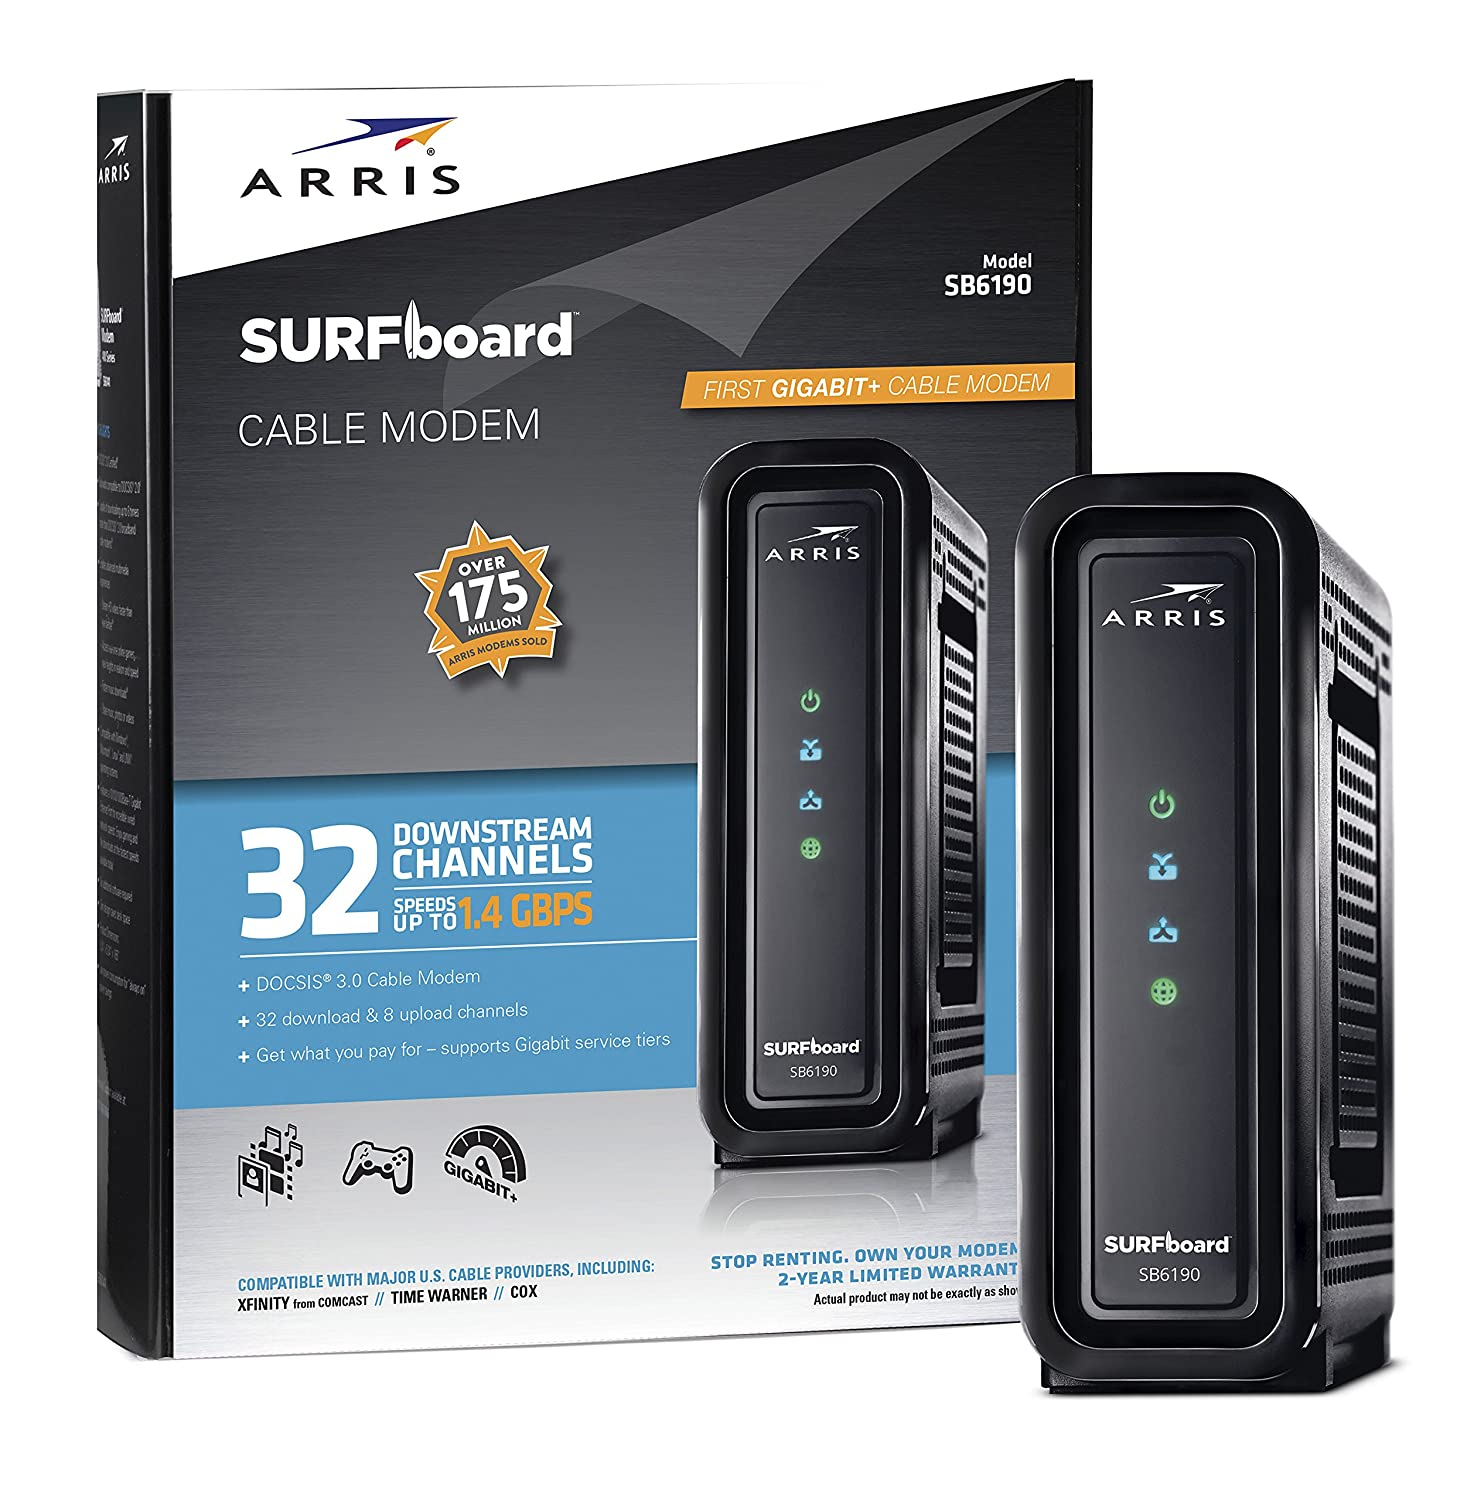 Amazon.com: ARRIS Surfboard SB6190 32x8 DOCSIS 3.0 Cable Modem ...